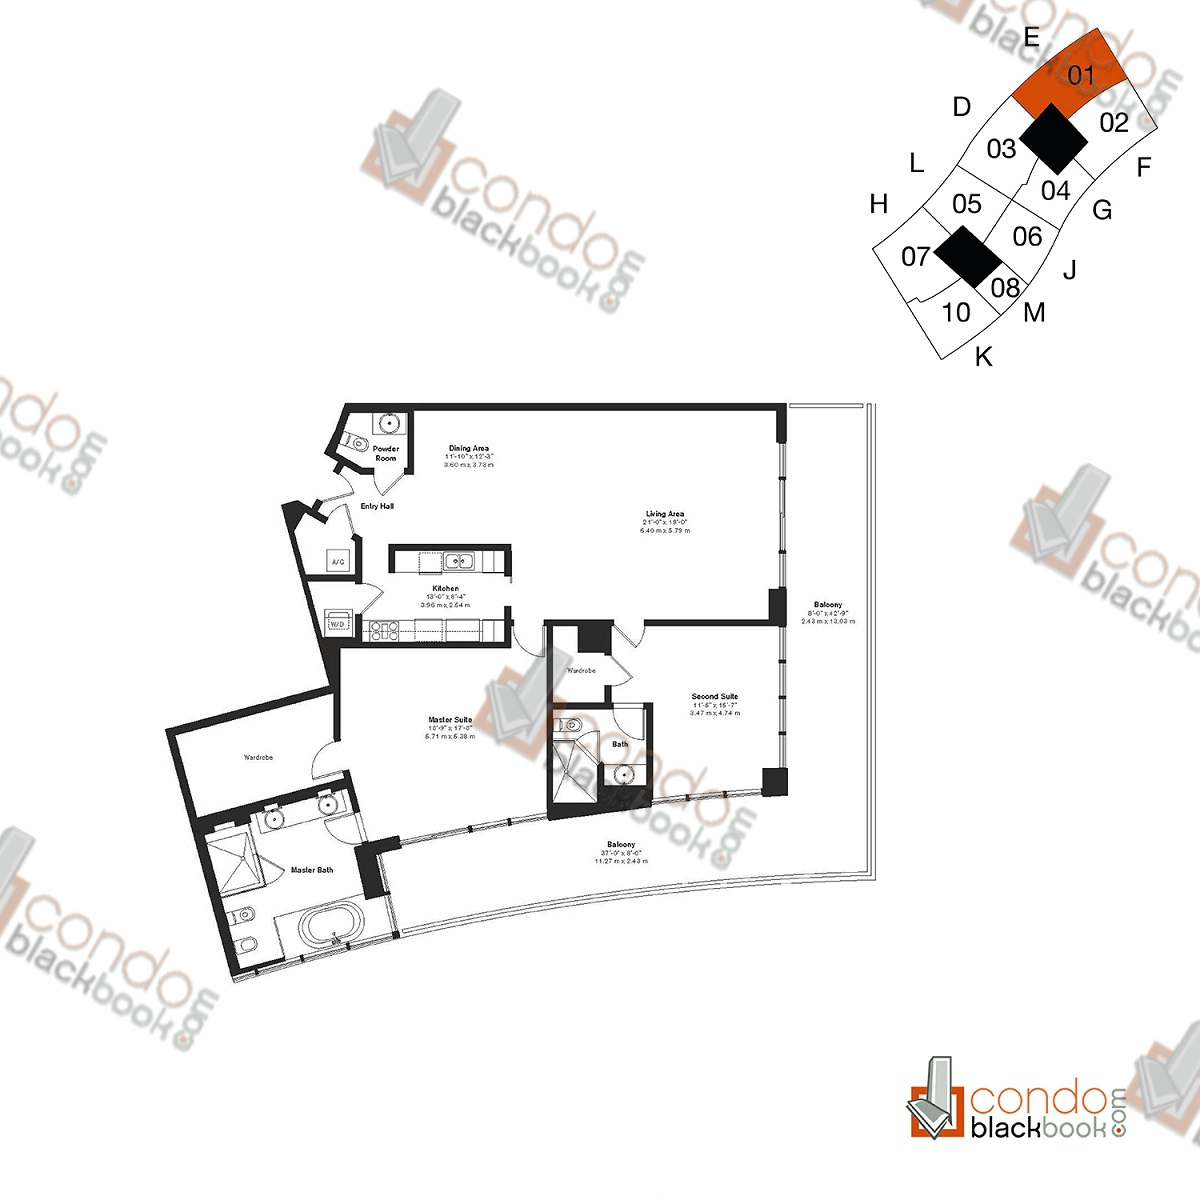 Floor plan for ICON South Beach South Beach Miami Beach, model Residence E, line 01, 3/3.5 bedrooms, 2,145 sq ft